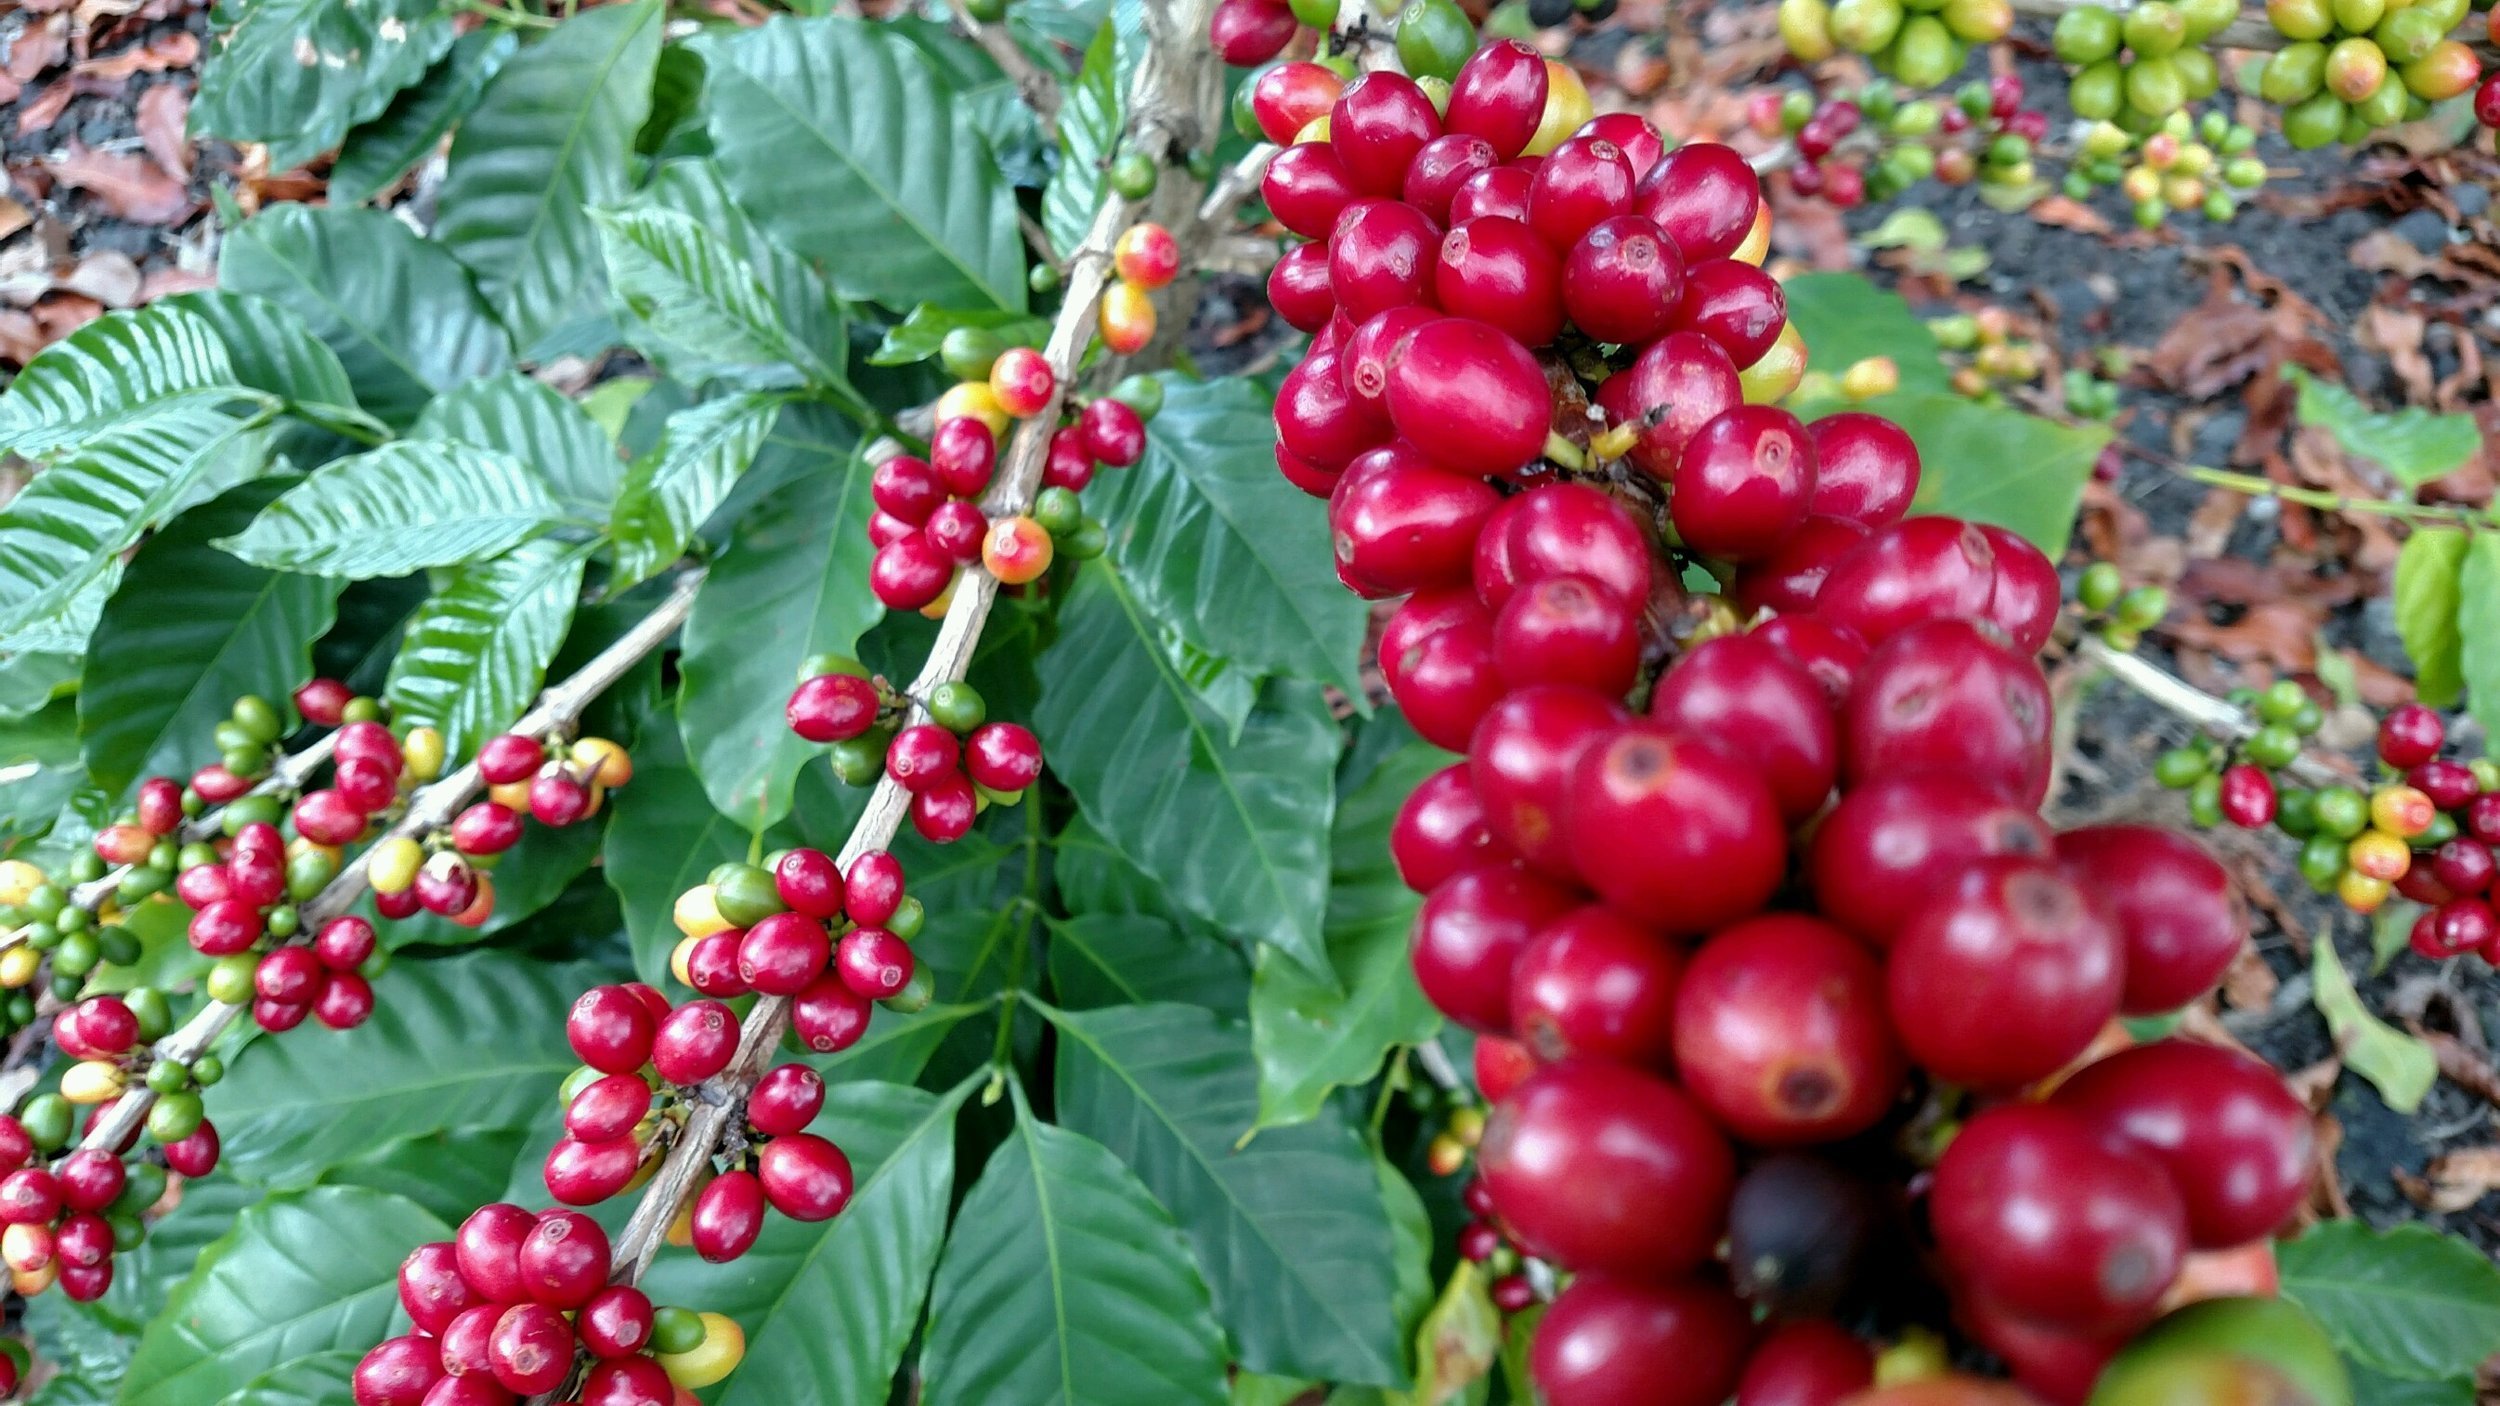 output 1_coffee branch w ripe cherries.jpg